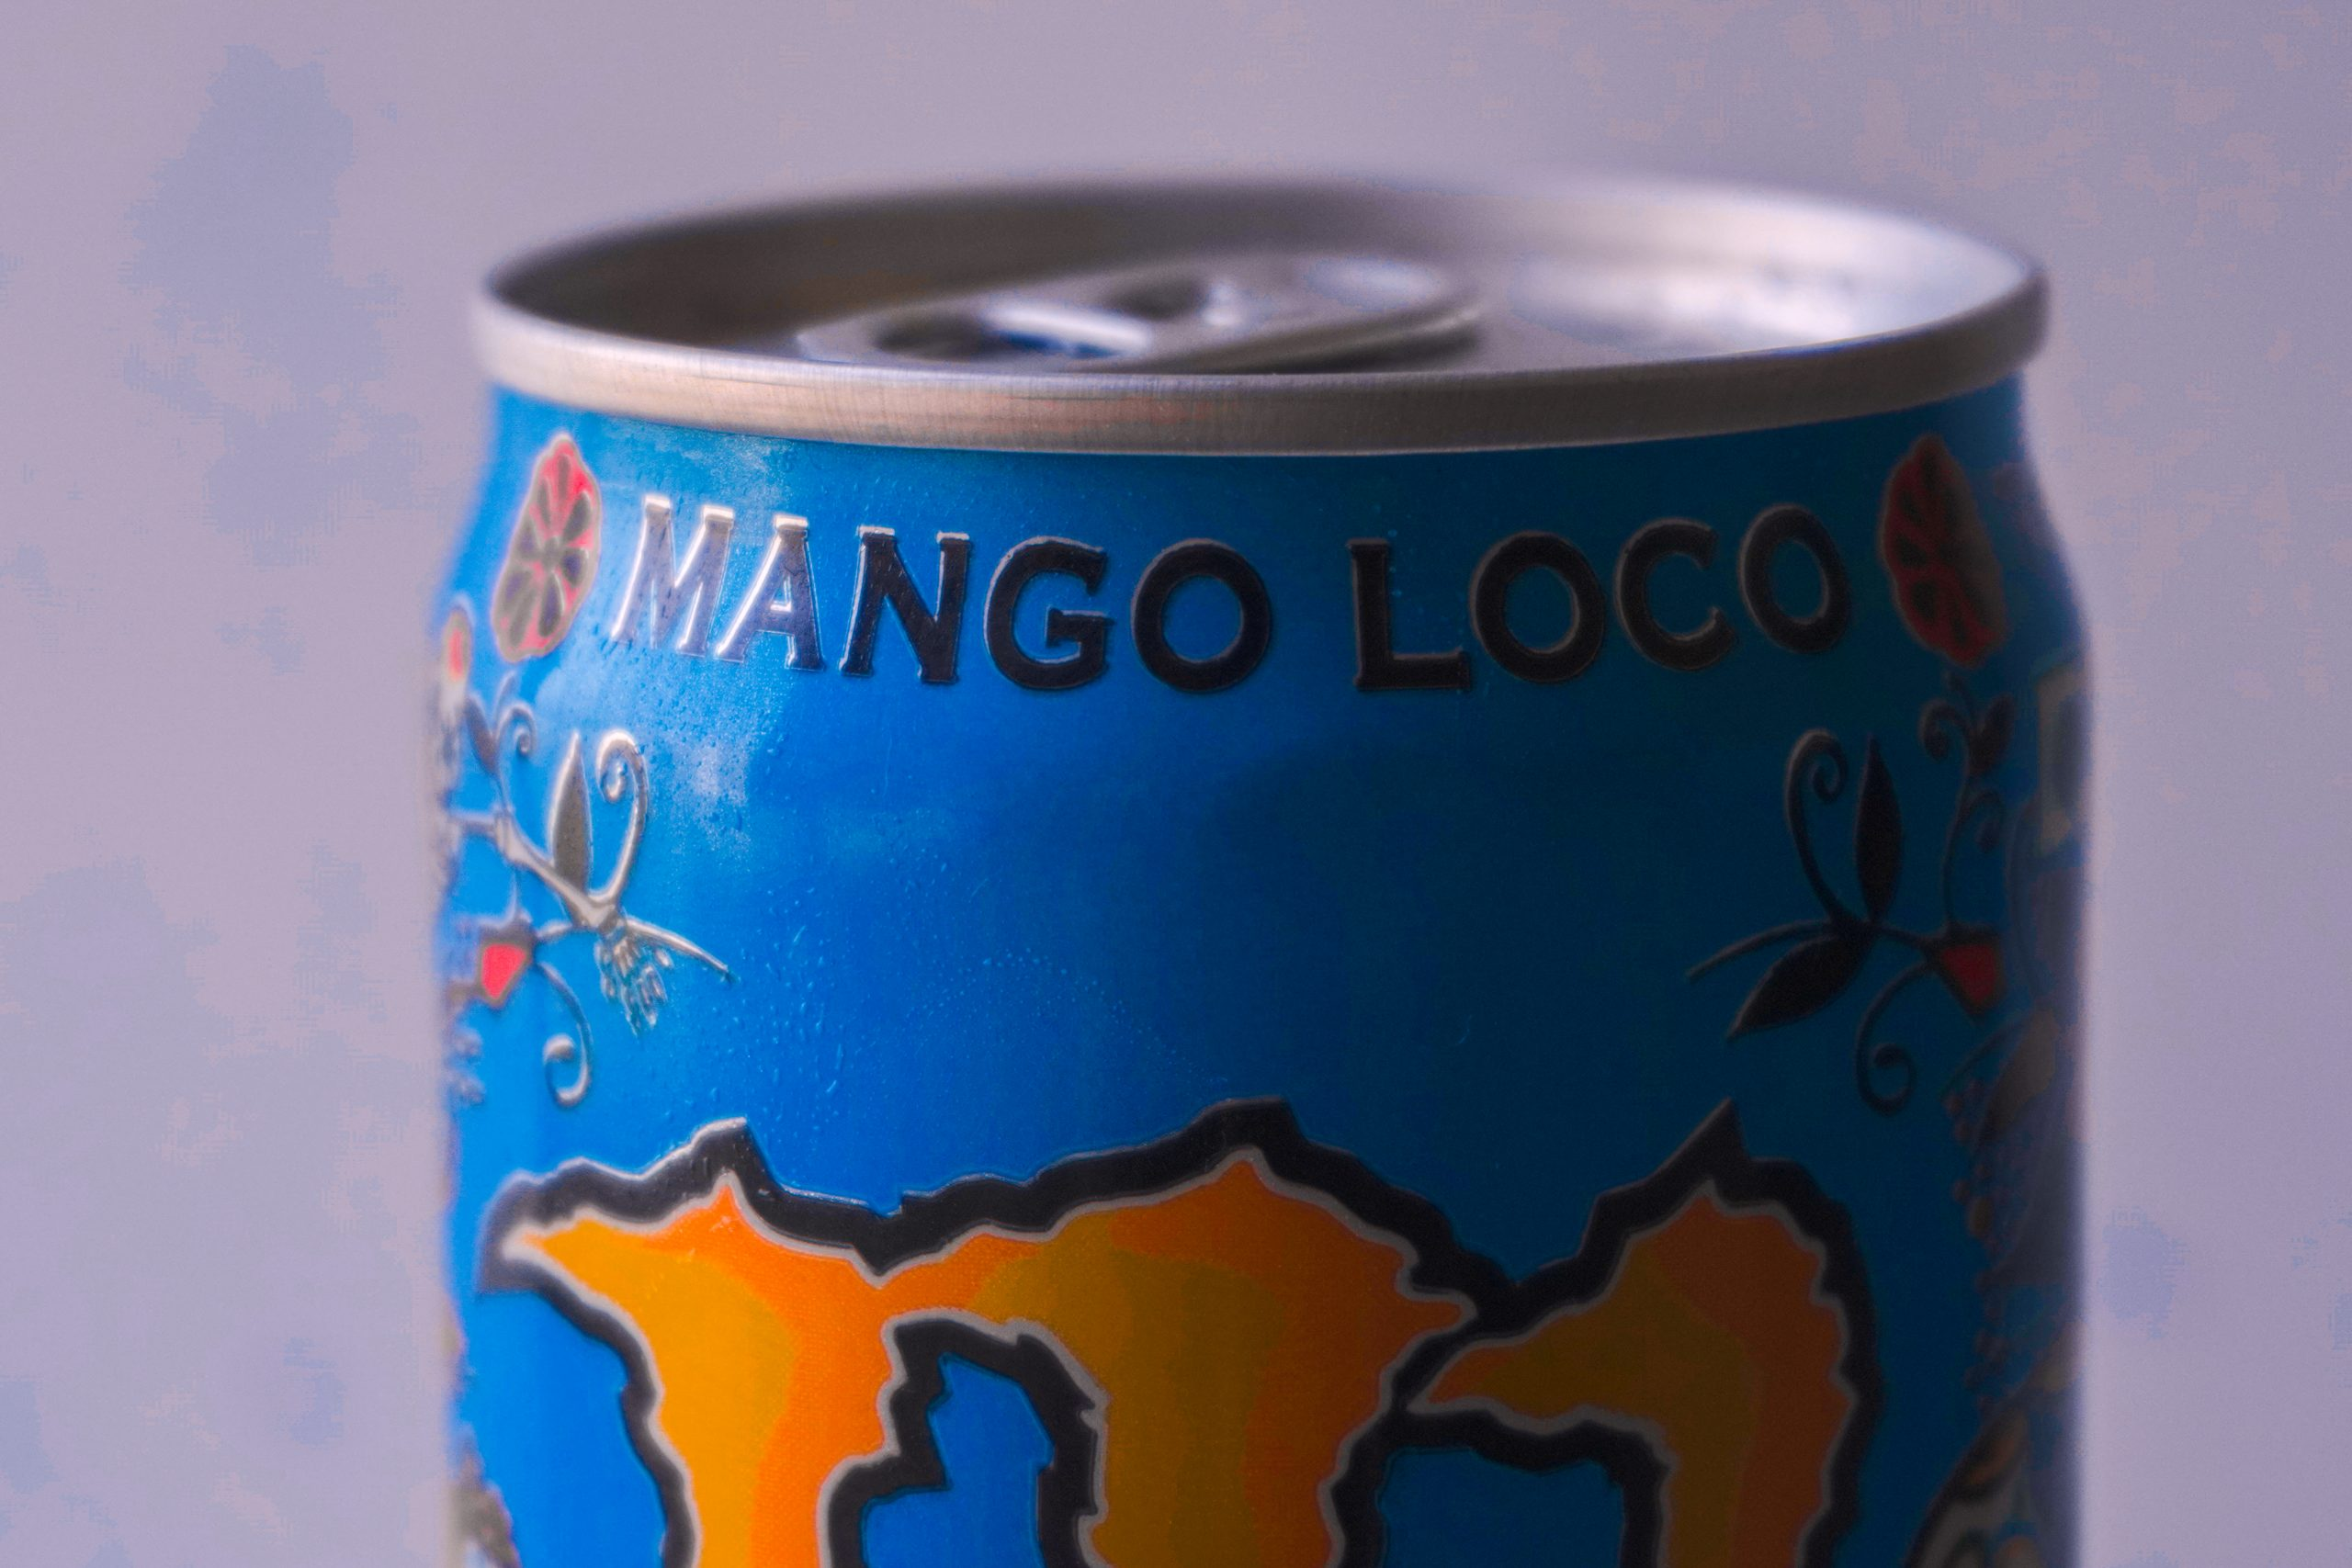 Mango loco soft drink can